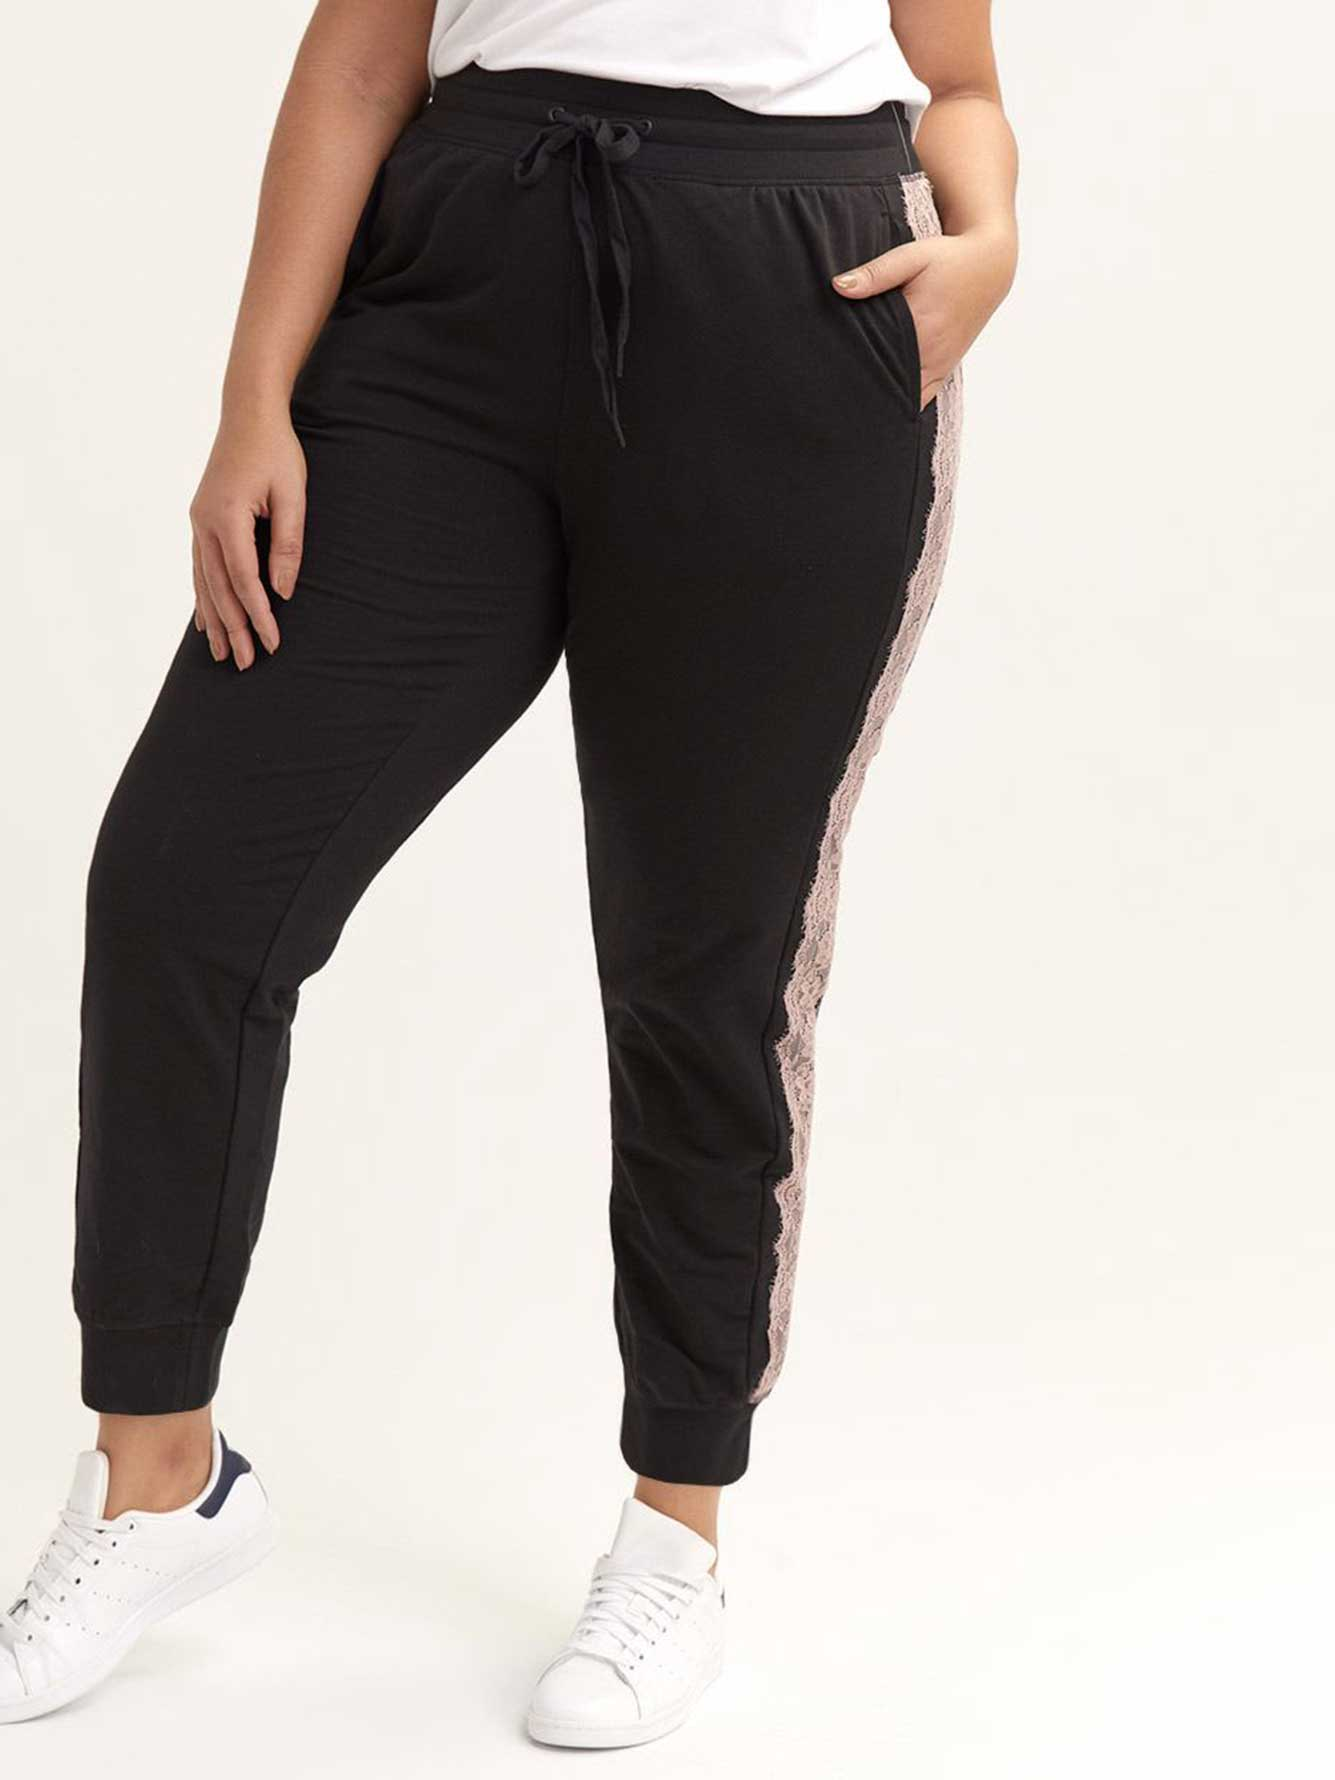 Joggers with Lace Applique - Nola